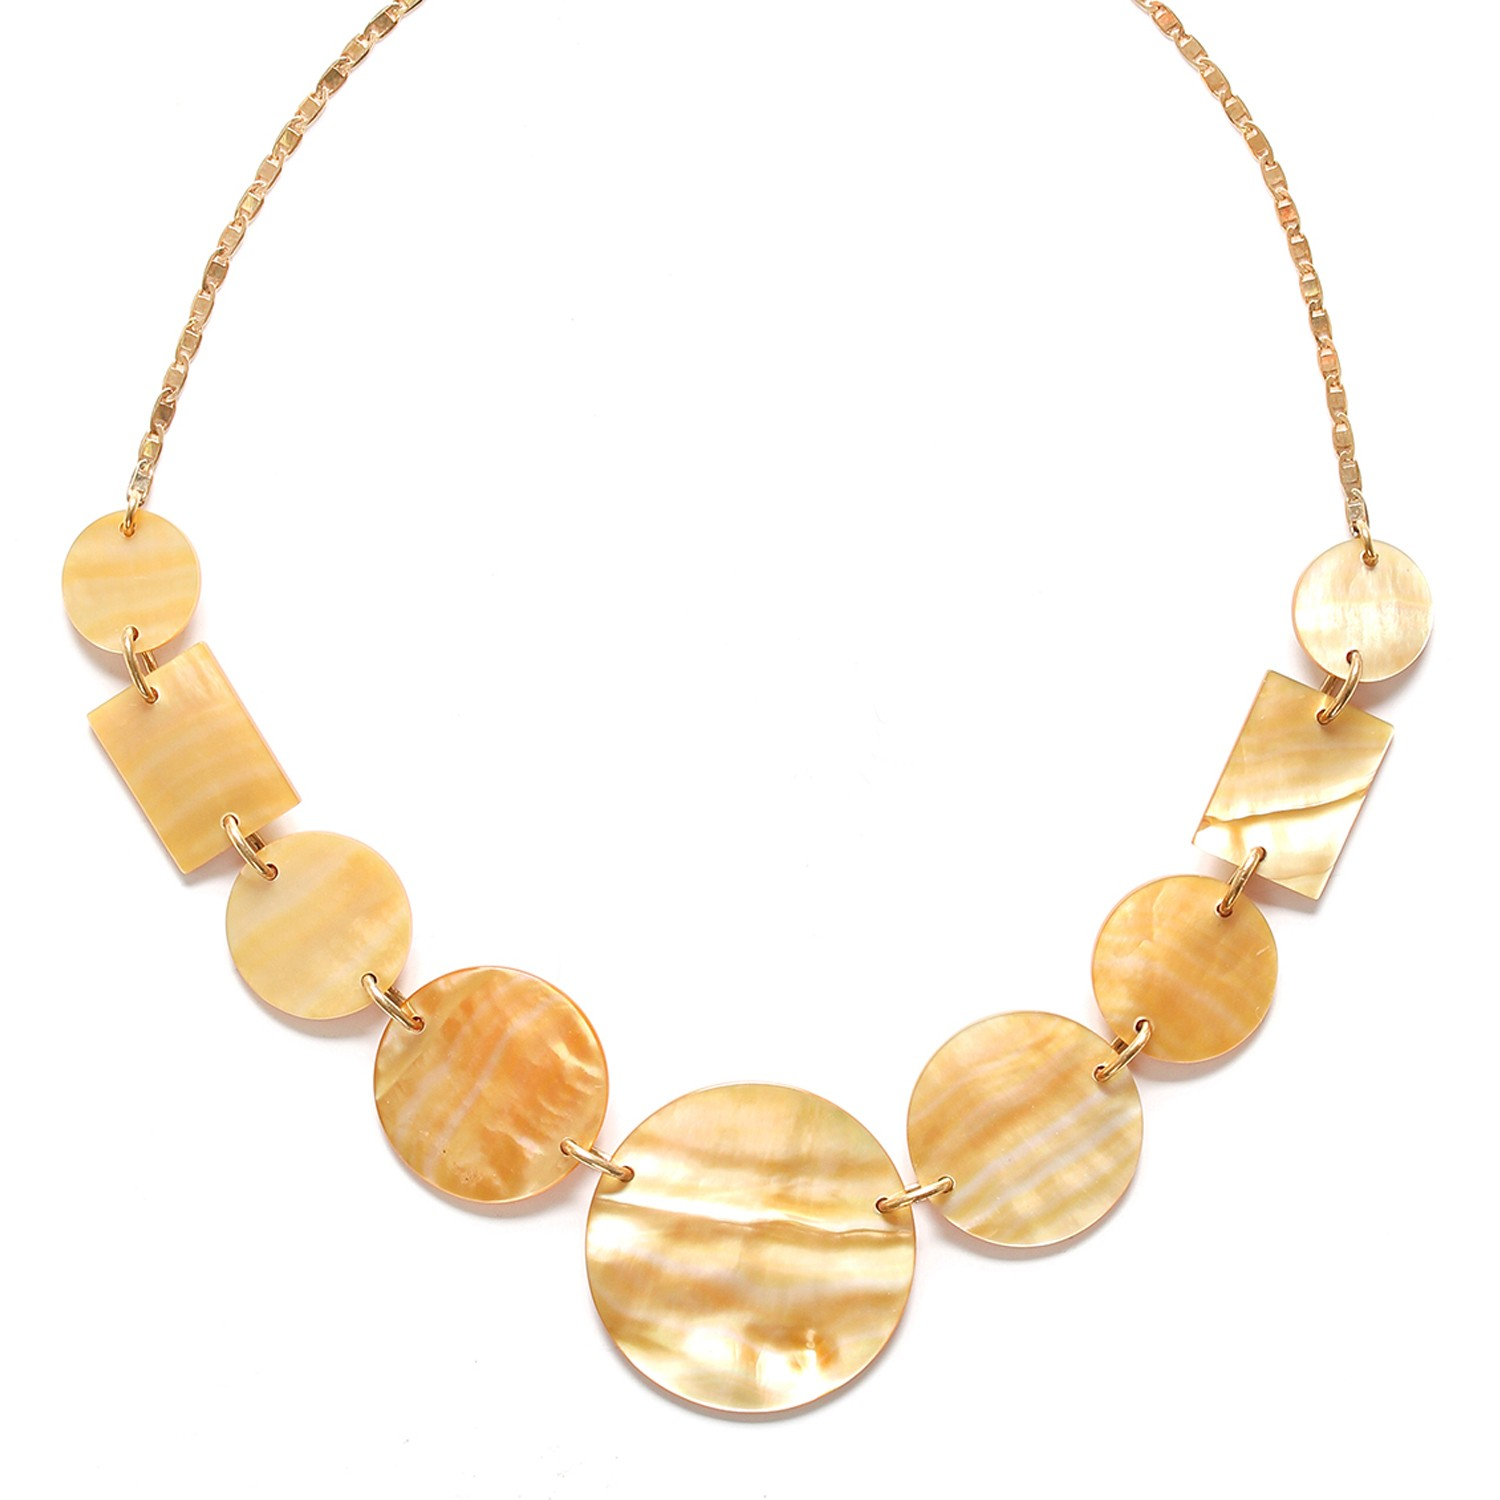 ORO graduated elements necklace